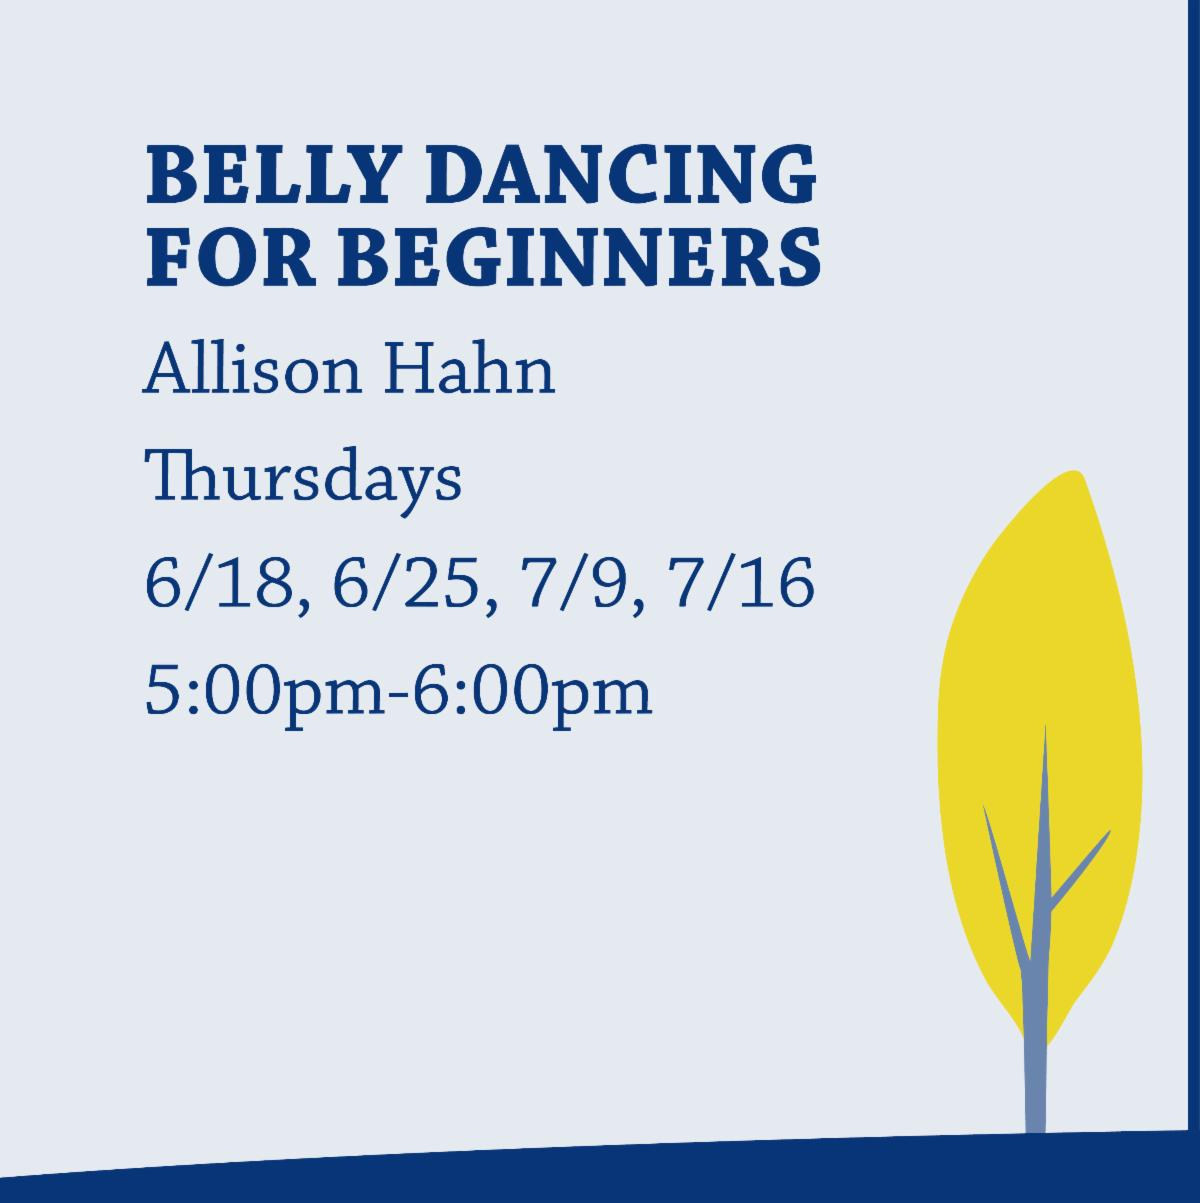 Belly Dancing for Beginners with Allison Hahn on Thursdays from 5:00pm-6:00pm